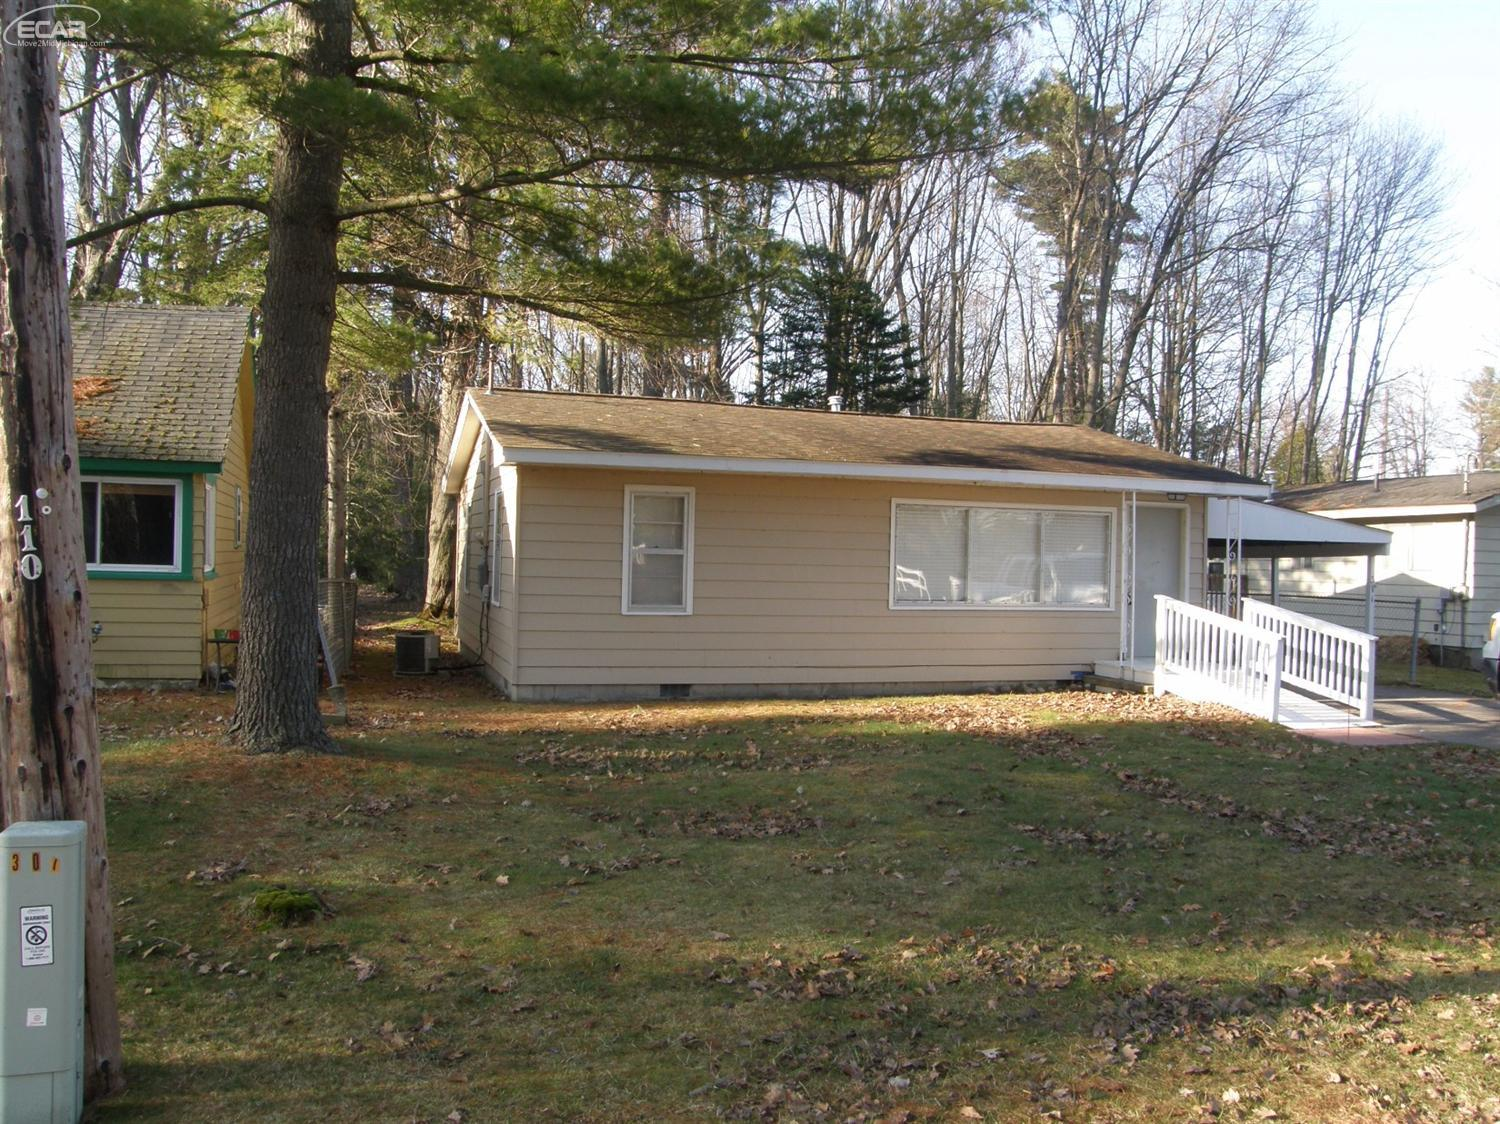 Photo of 311 West Tawas Lake Road  East Tawas  MI